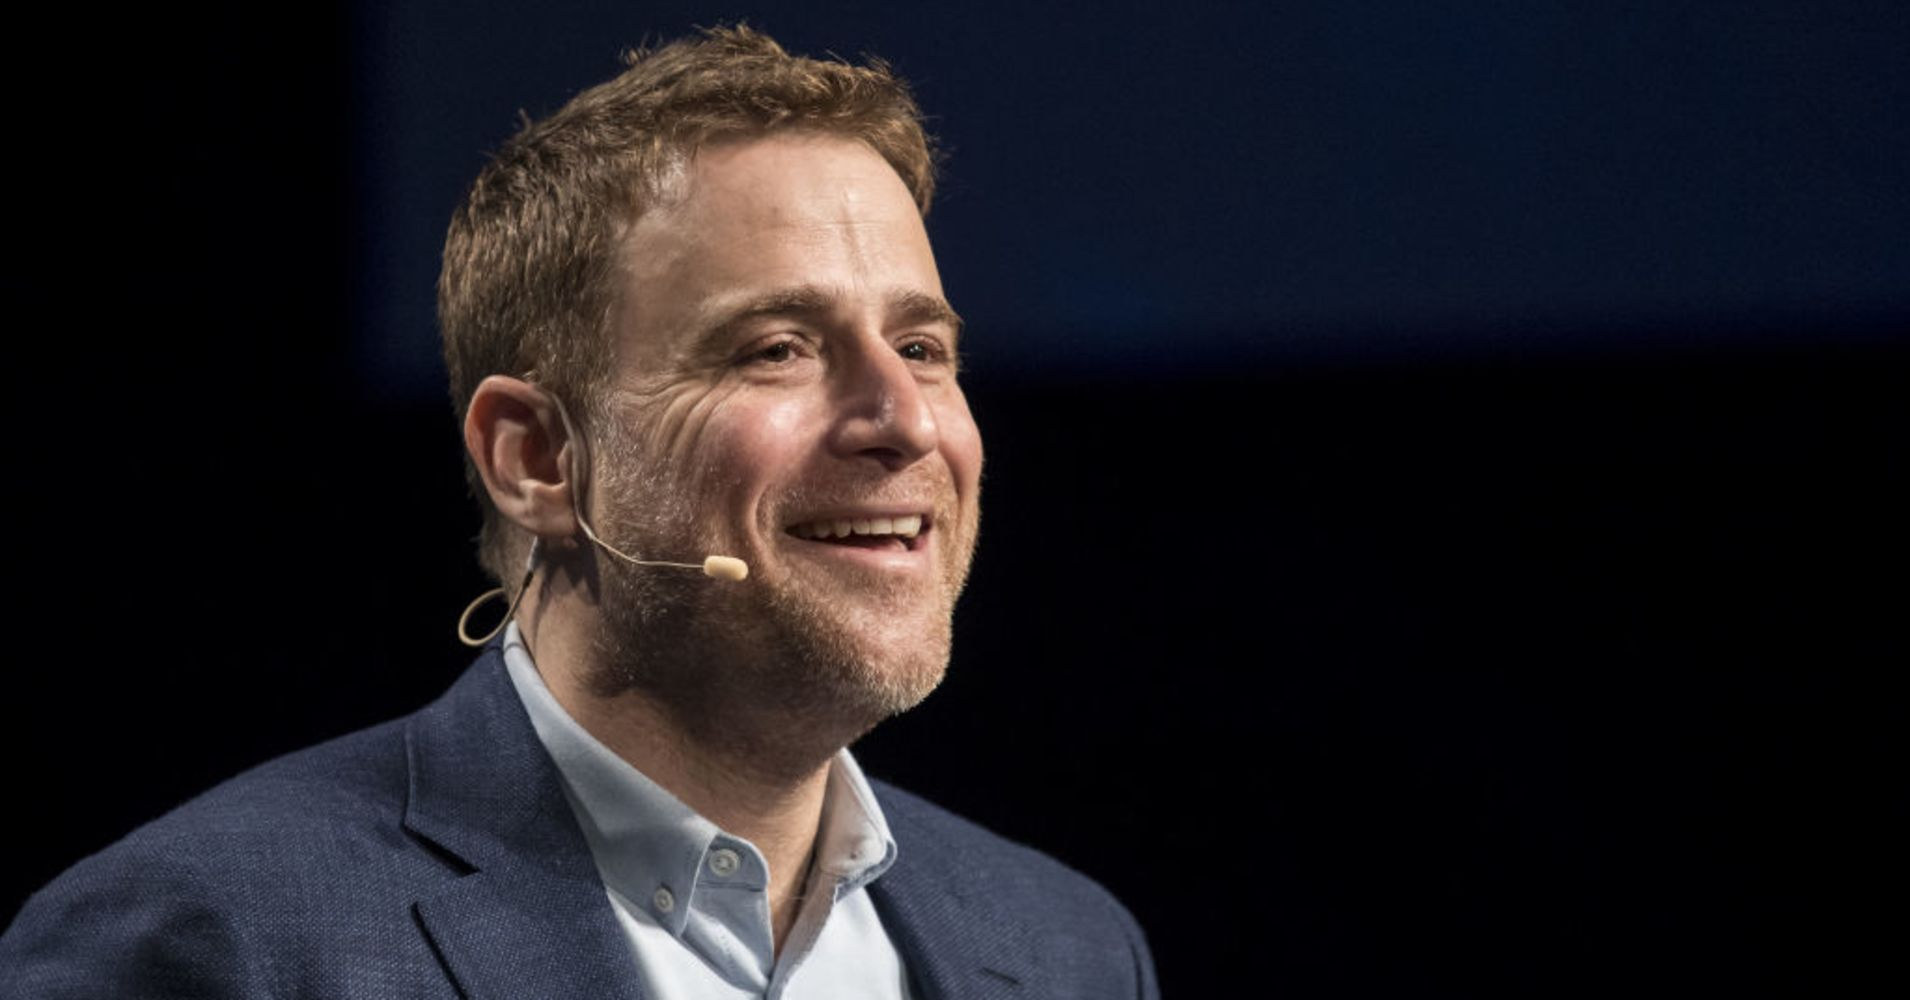 Stewart Butterfield, co-founder and CEO of Slack